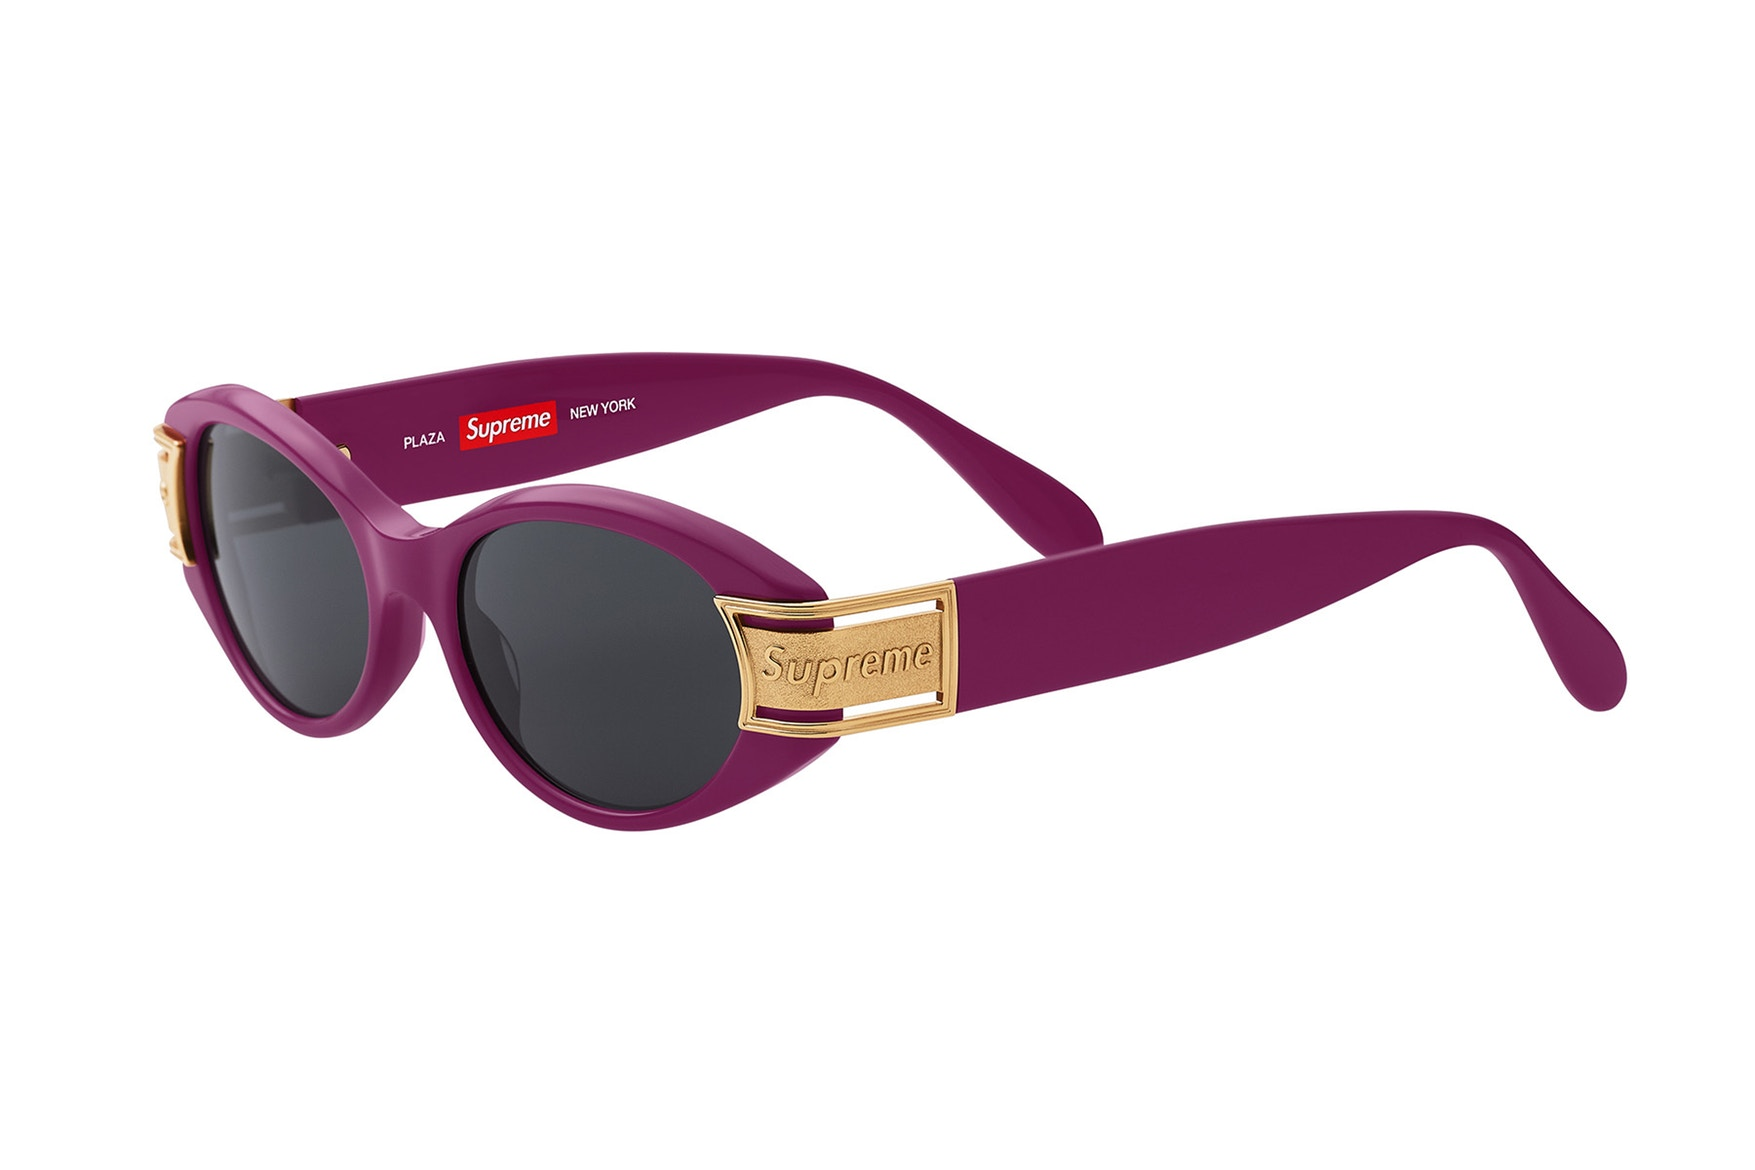 Supreme Debuts Five New Italian Handcrafted Sunglasses For The Summer